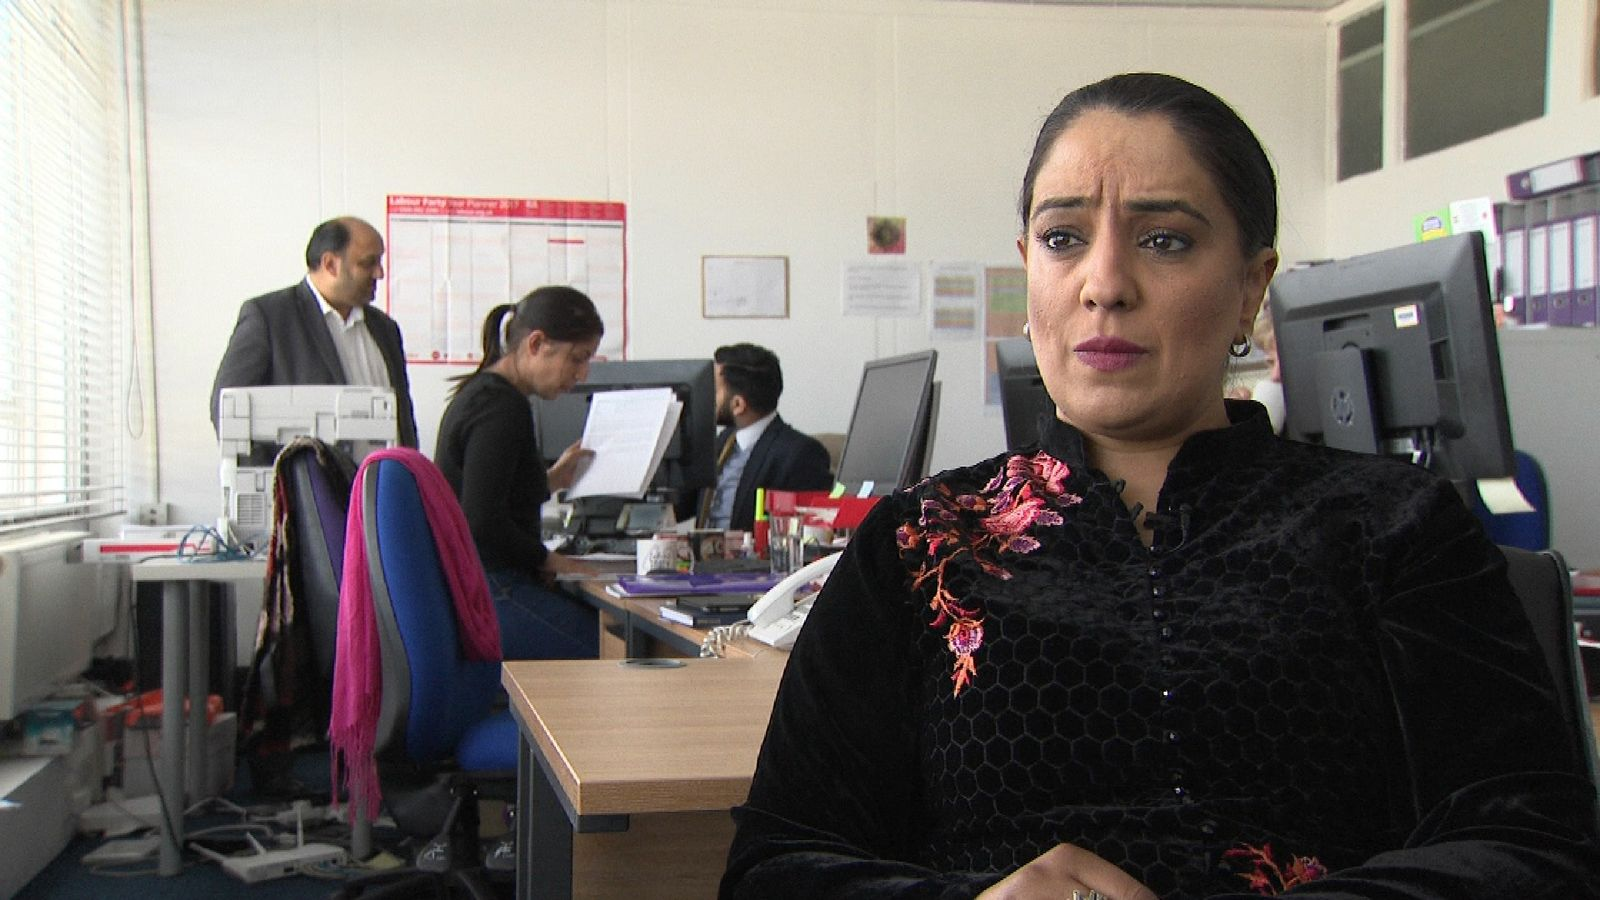 Naz Shah has been receiving death threats